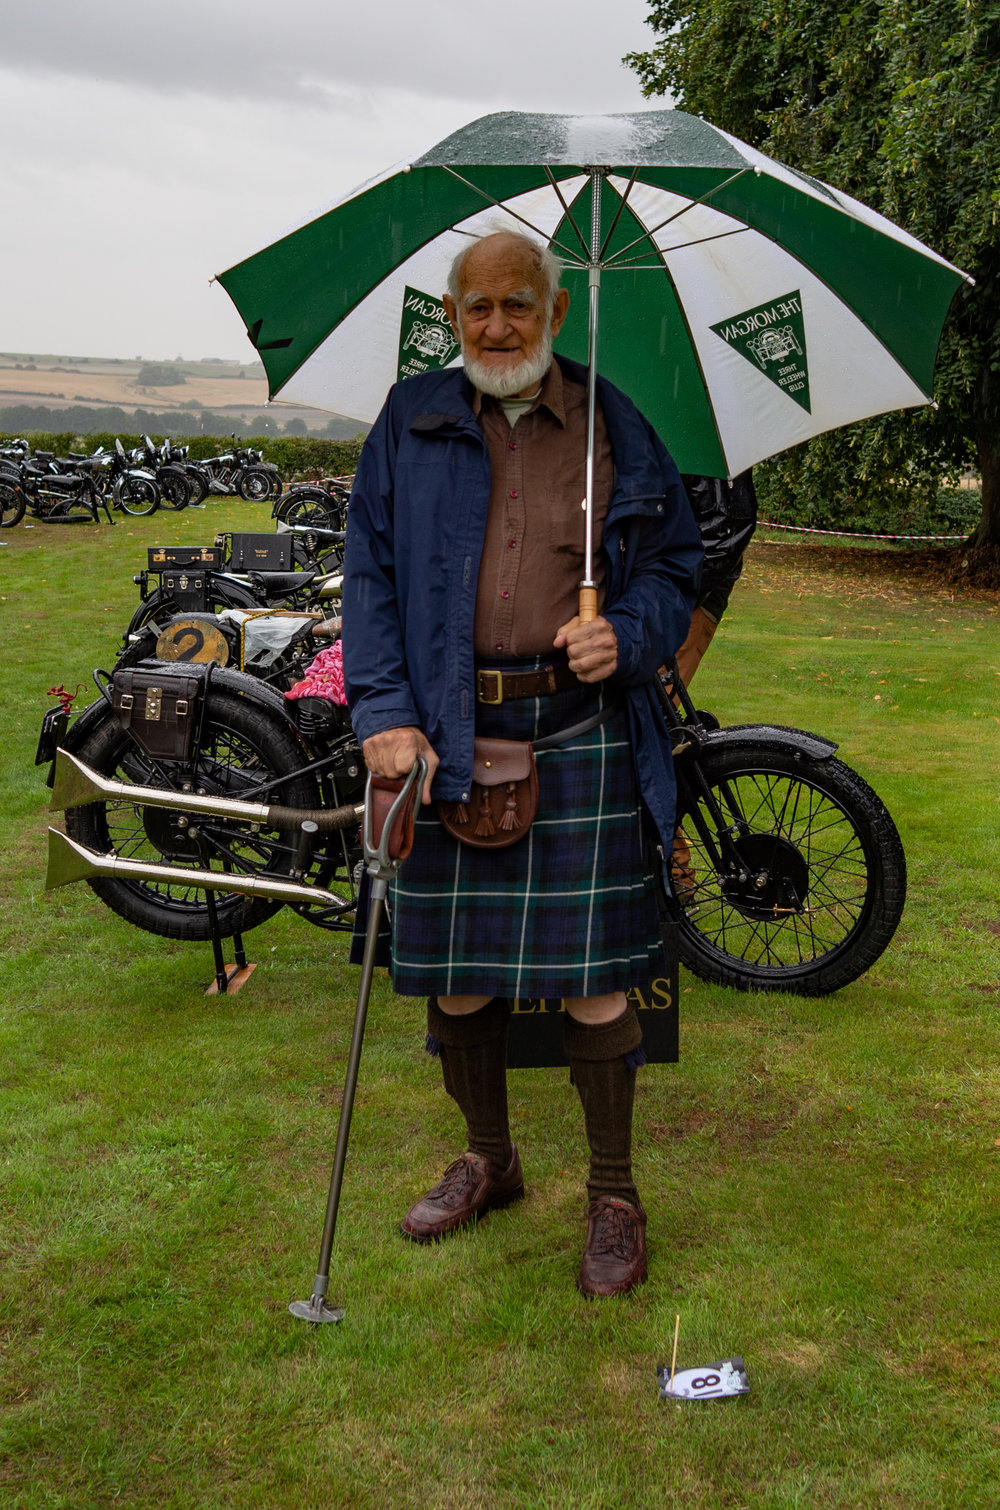 Reverend Michael Staines, one of the earliest members of the Brough Superior Club. He has been a member for 60 years. Will my Leica X2 be paraded out for the faithful in 60 years' time? I wonder.